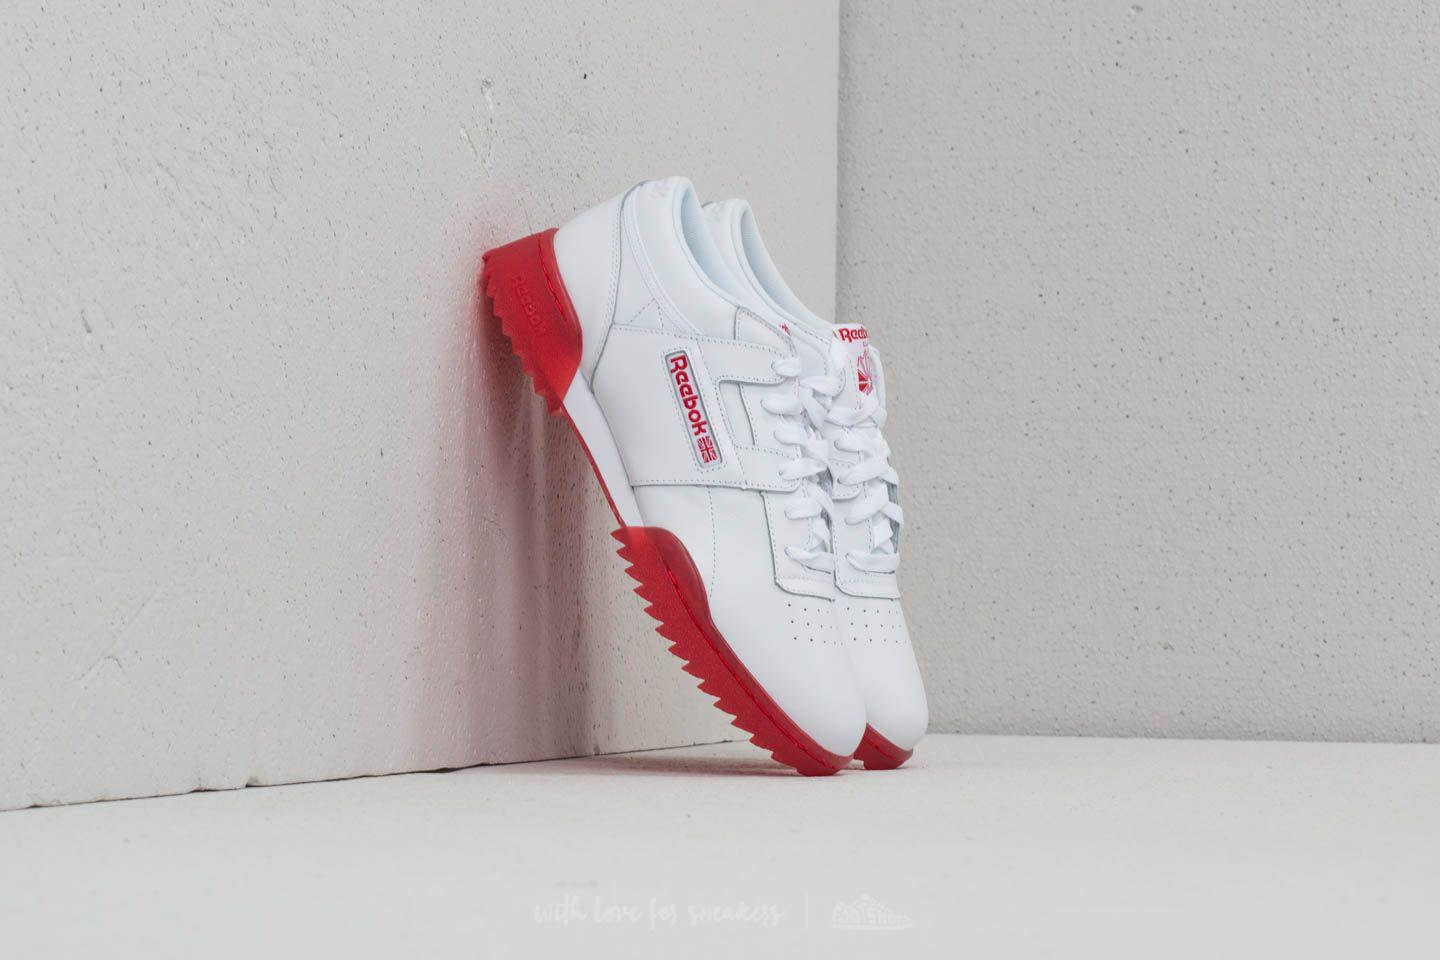 988a34a9d3c Reebok Reebok Workout Clean Ripple Ice White/ Primal Red-ice for men